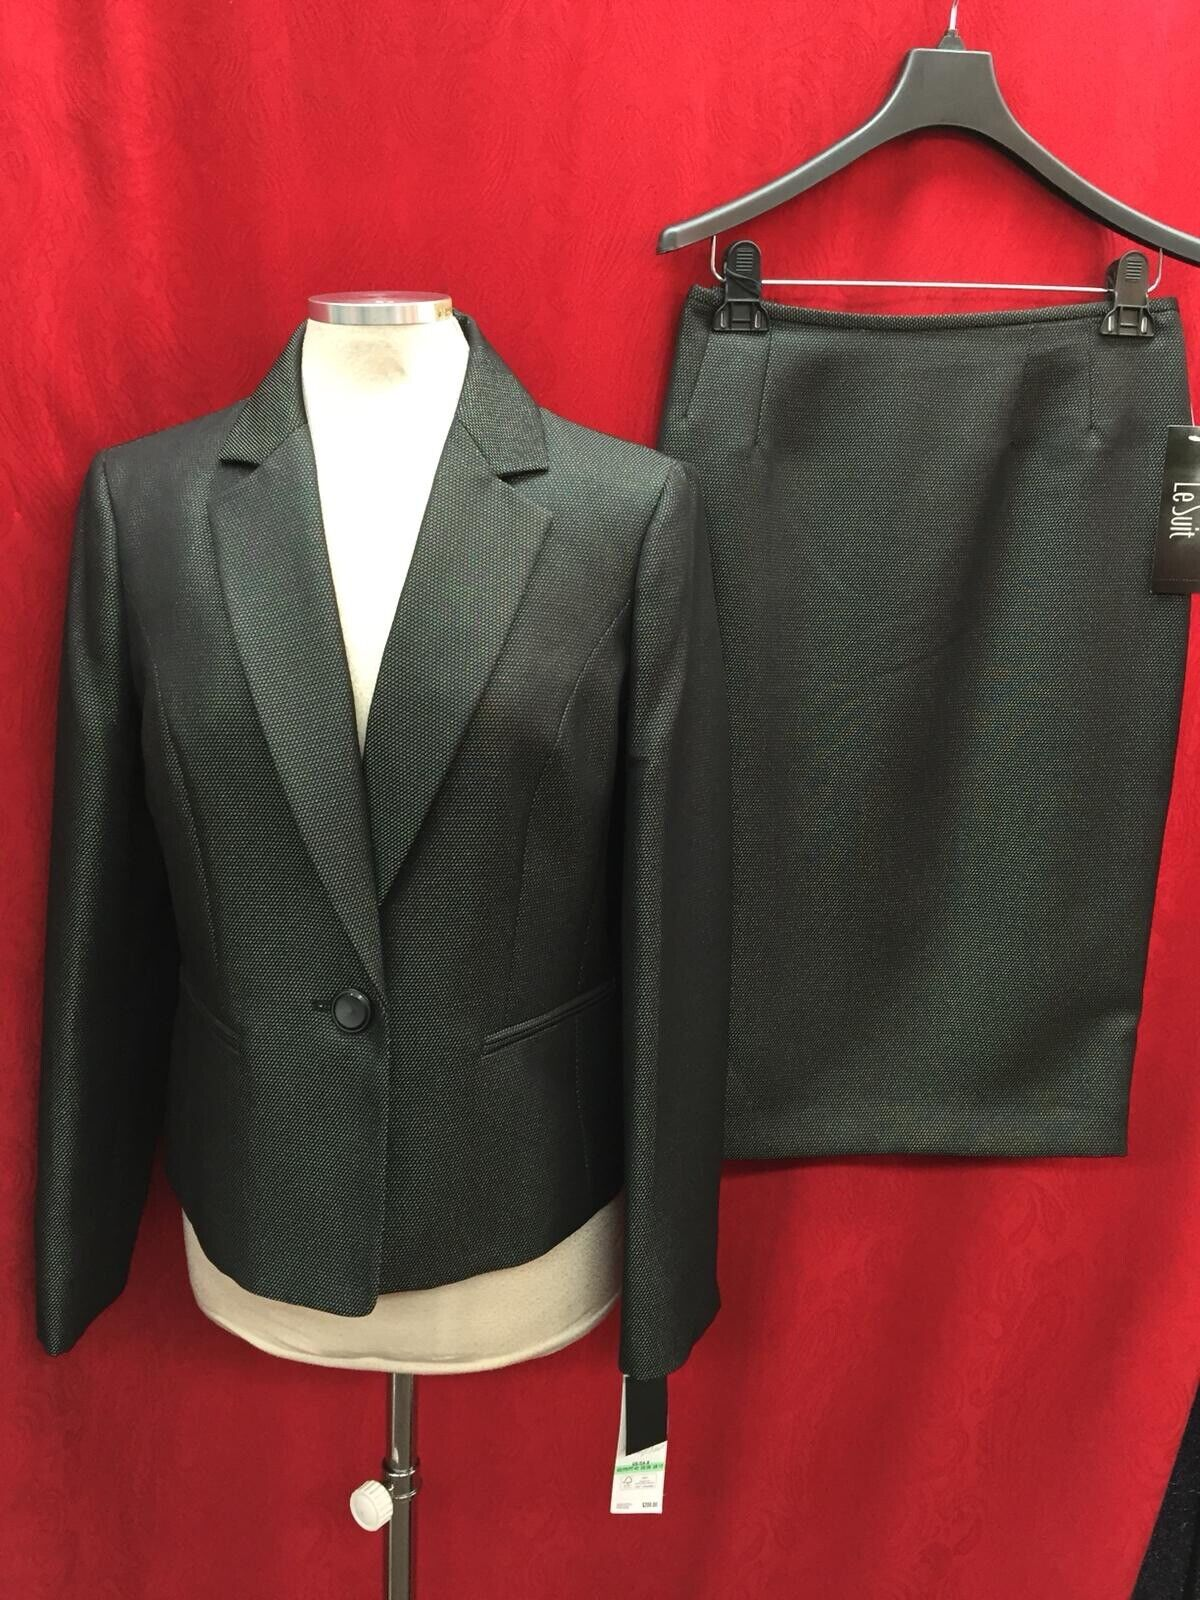 LESUIT SKIRT SUIT SIZE 14W SKIRT LENGTH 25' LINED RETAIL NEW WITH TAG